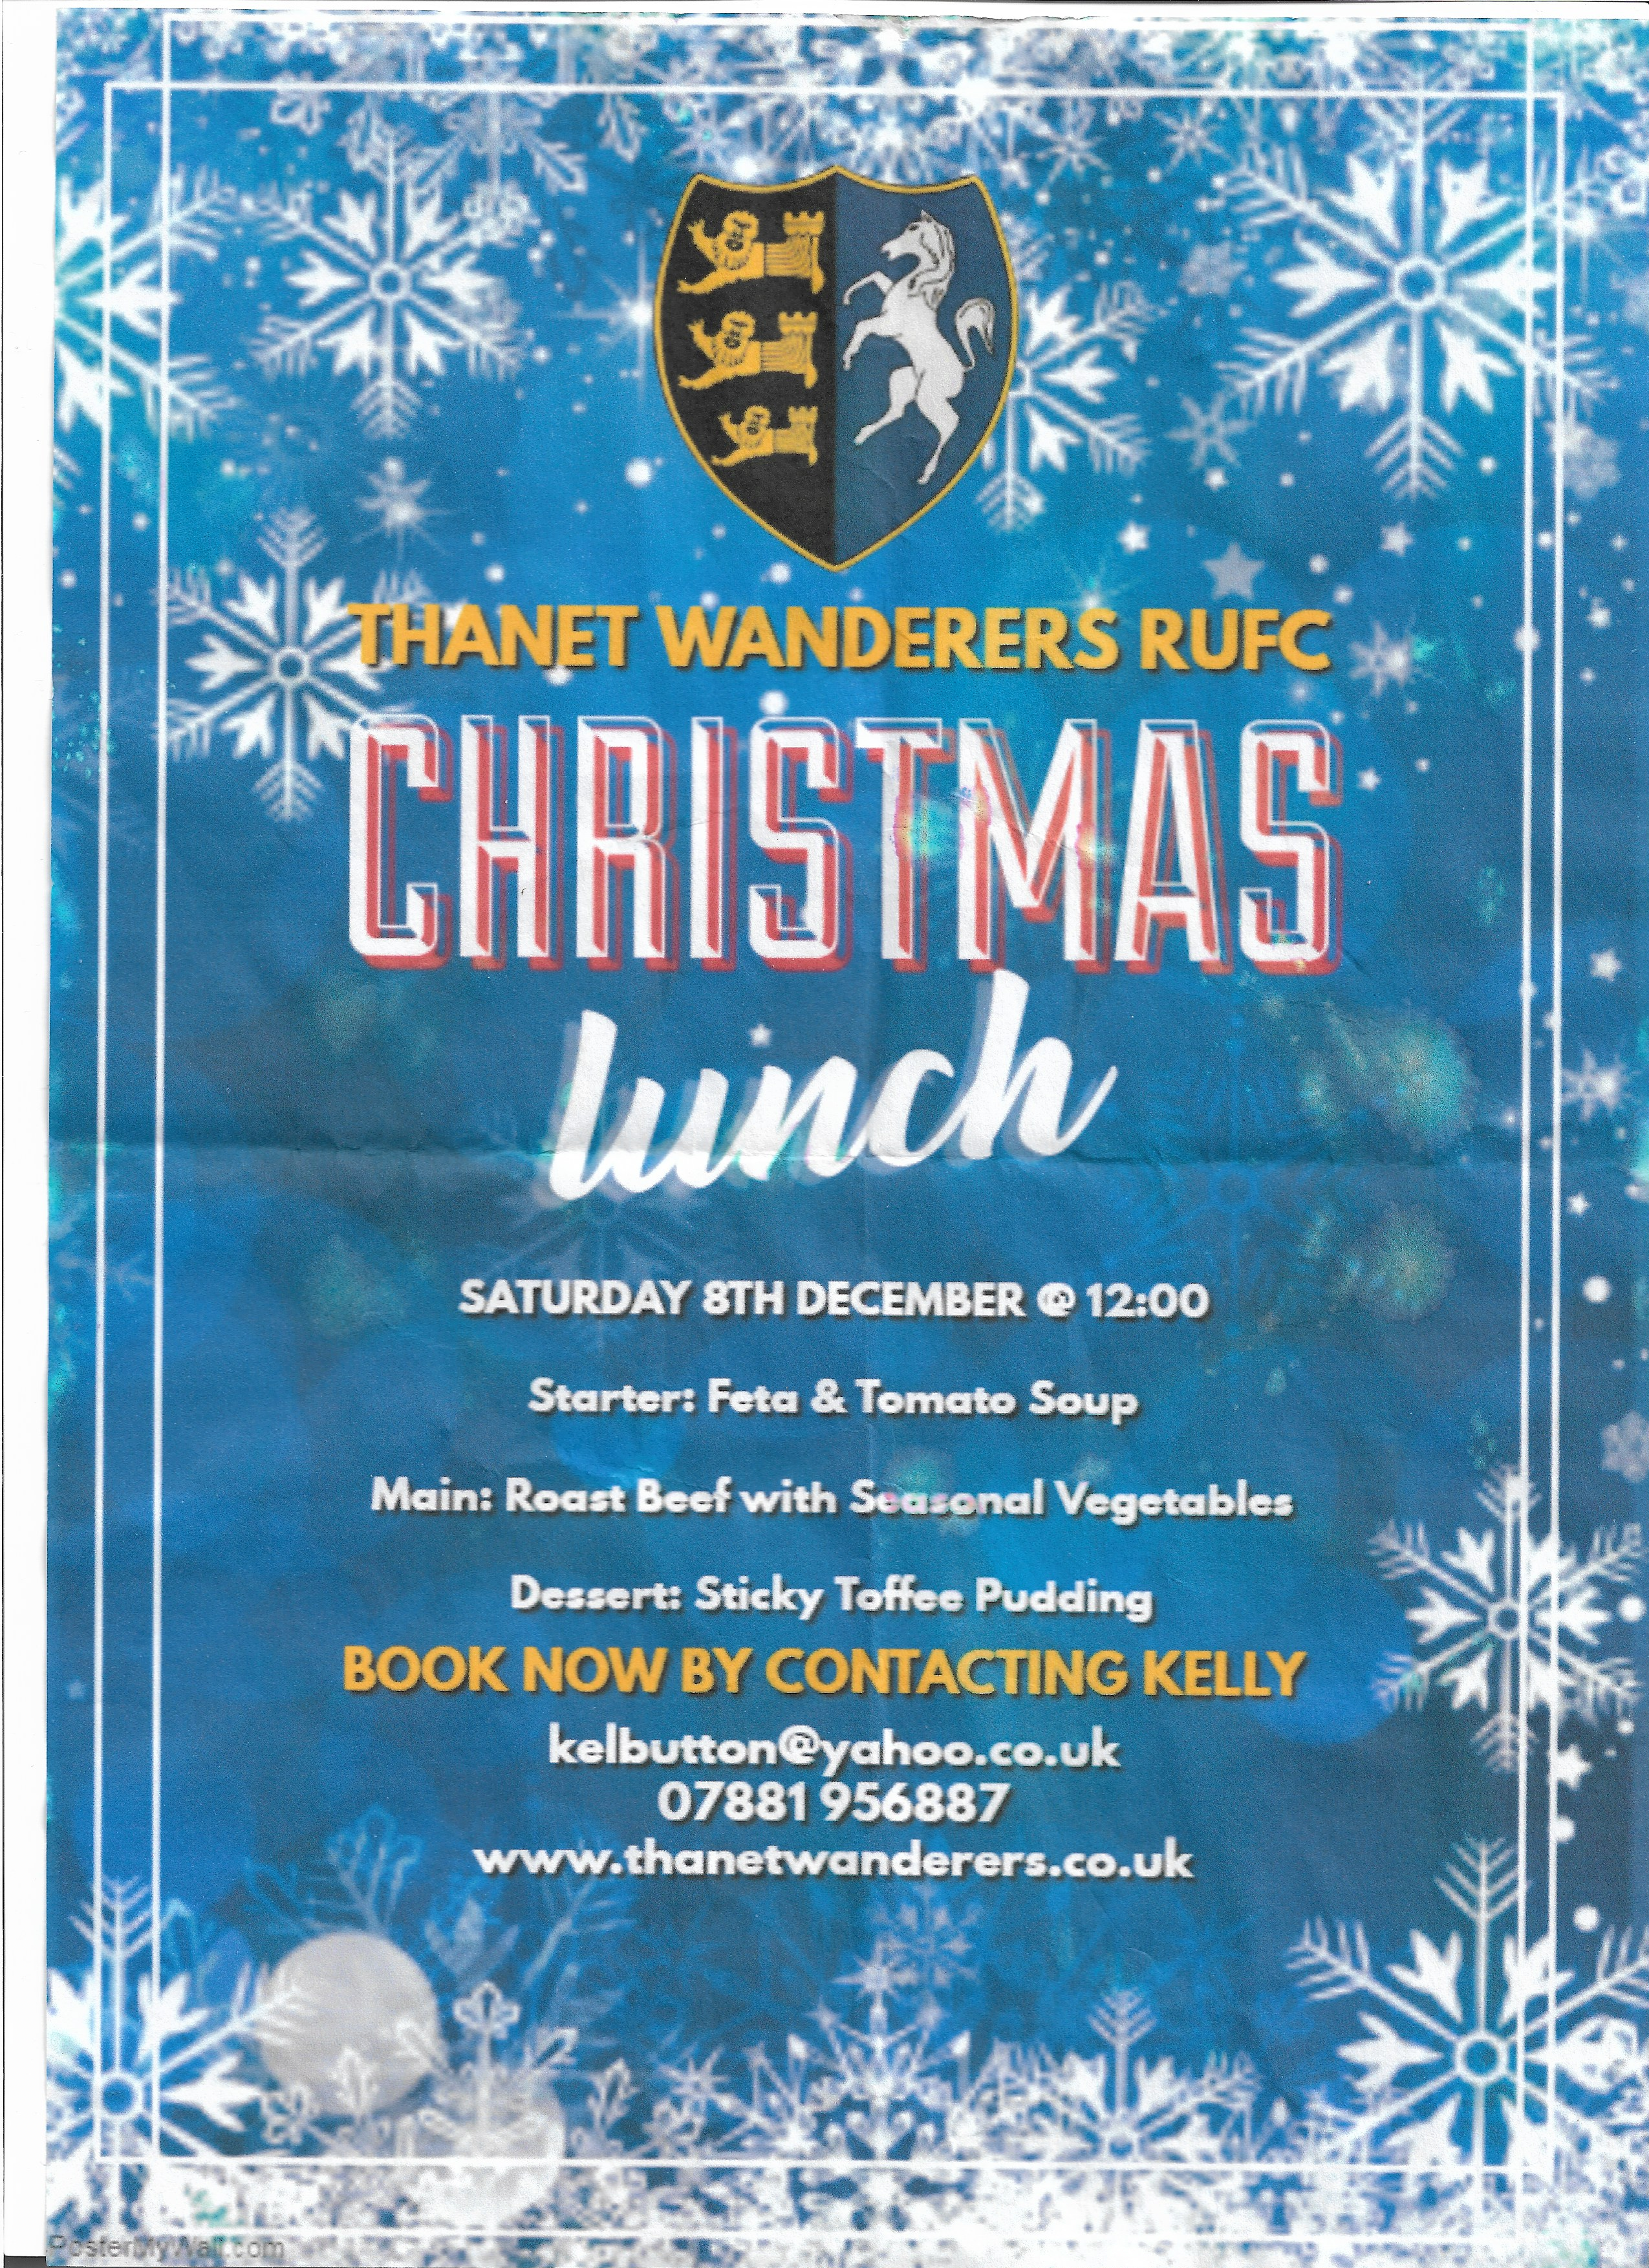 Image for the CHRISTMAS LUNCH 8TH DECEMBER news article